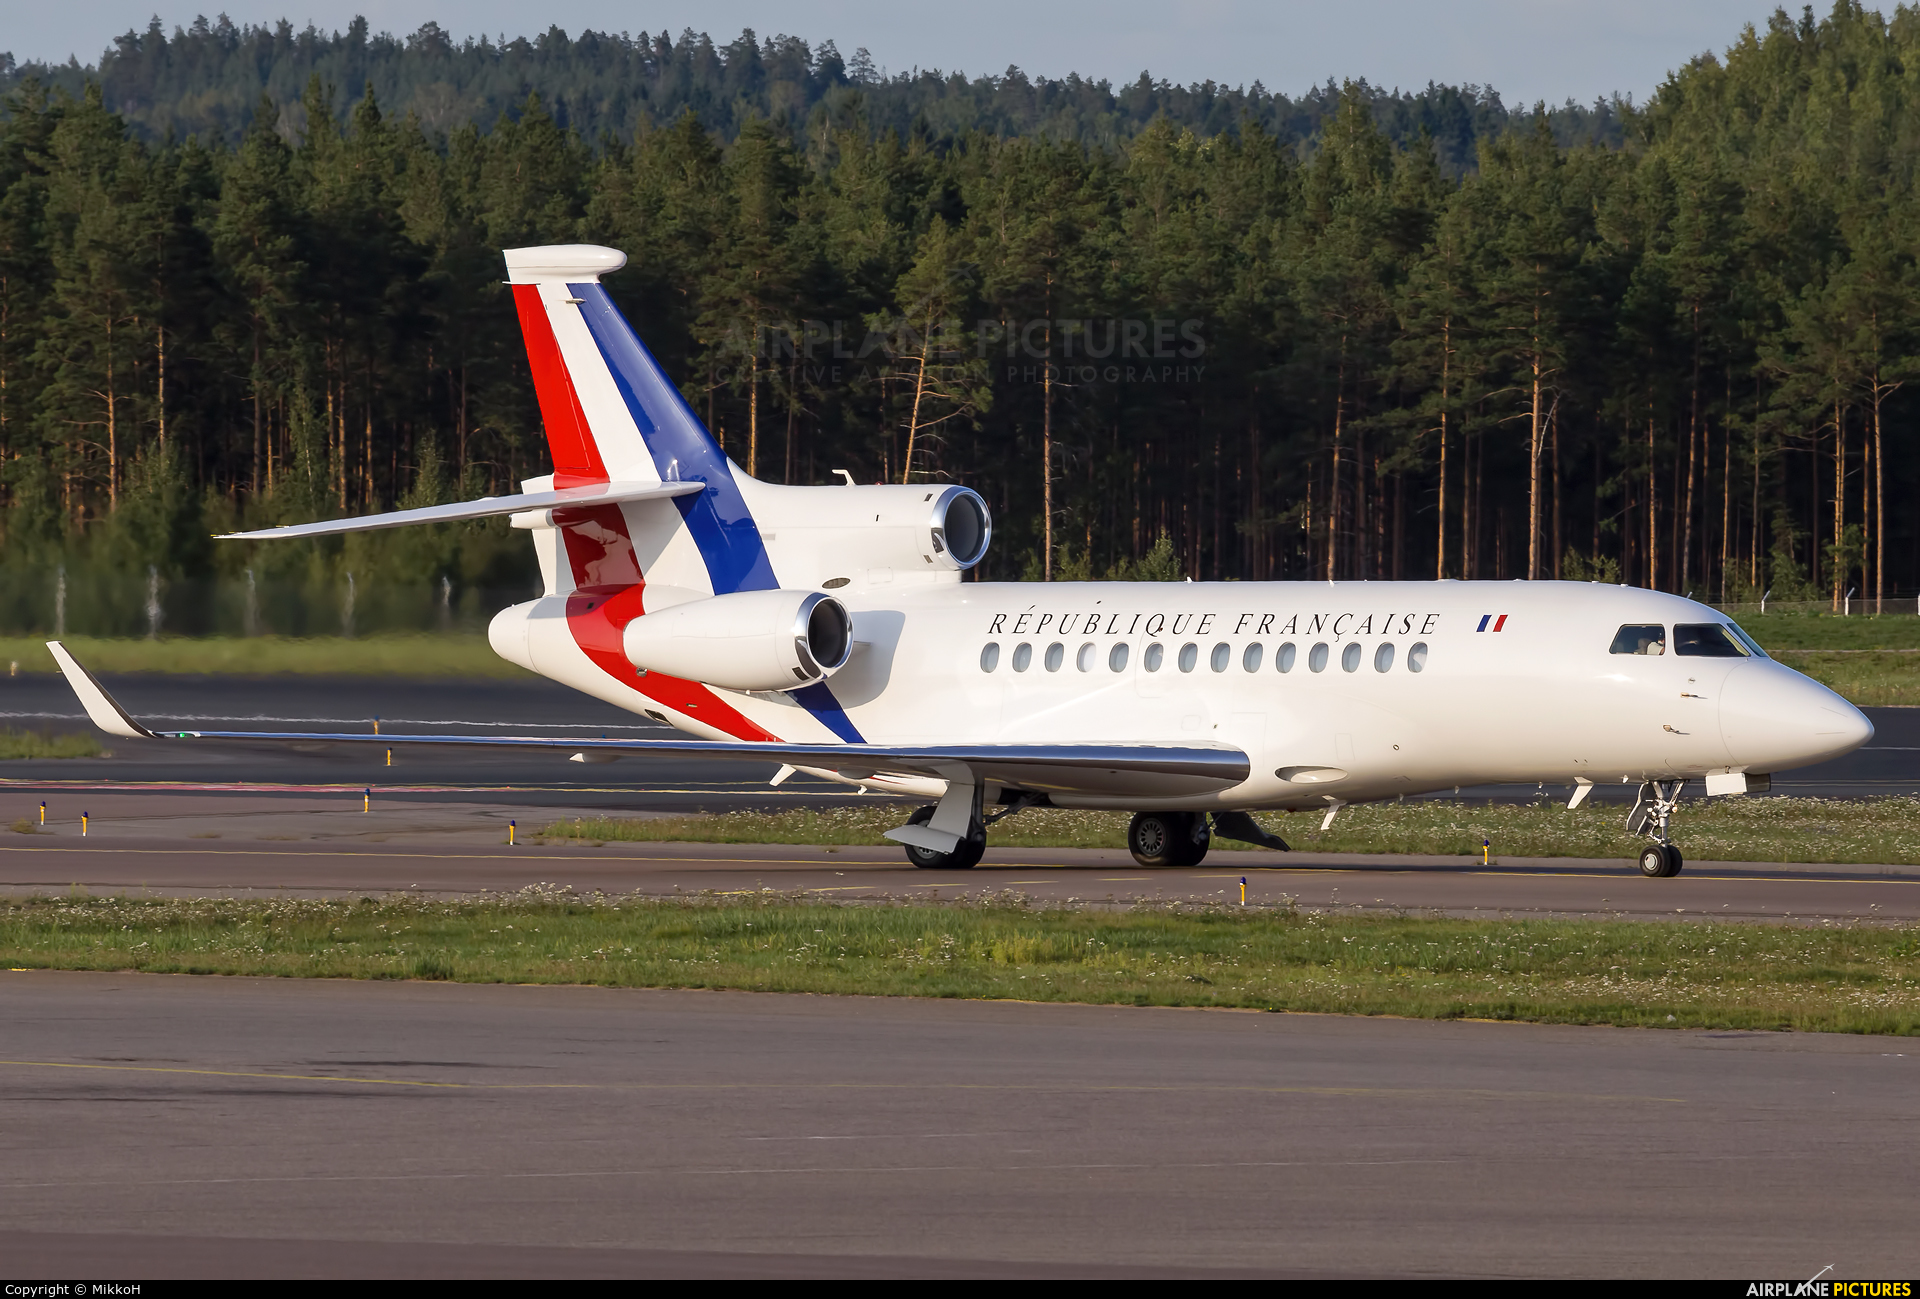 f rafb france air force dassault falcon 7x at helsinki vantaa